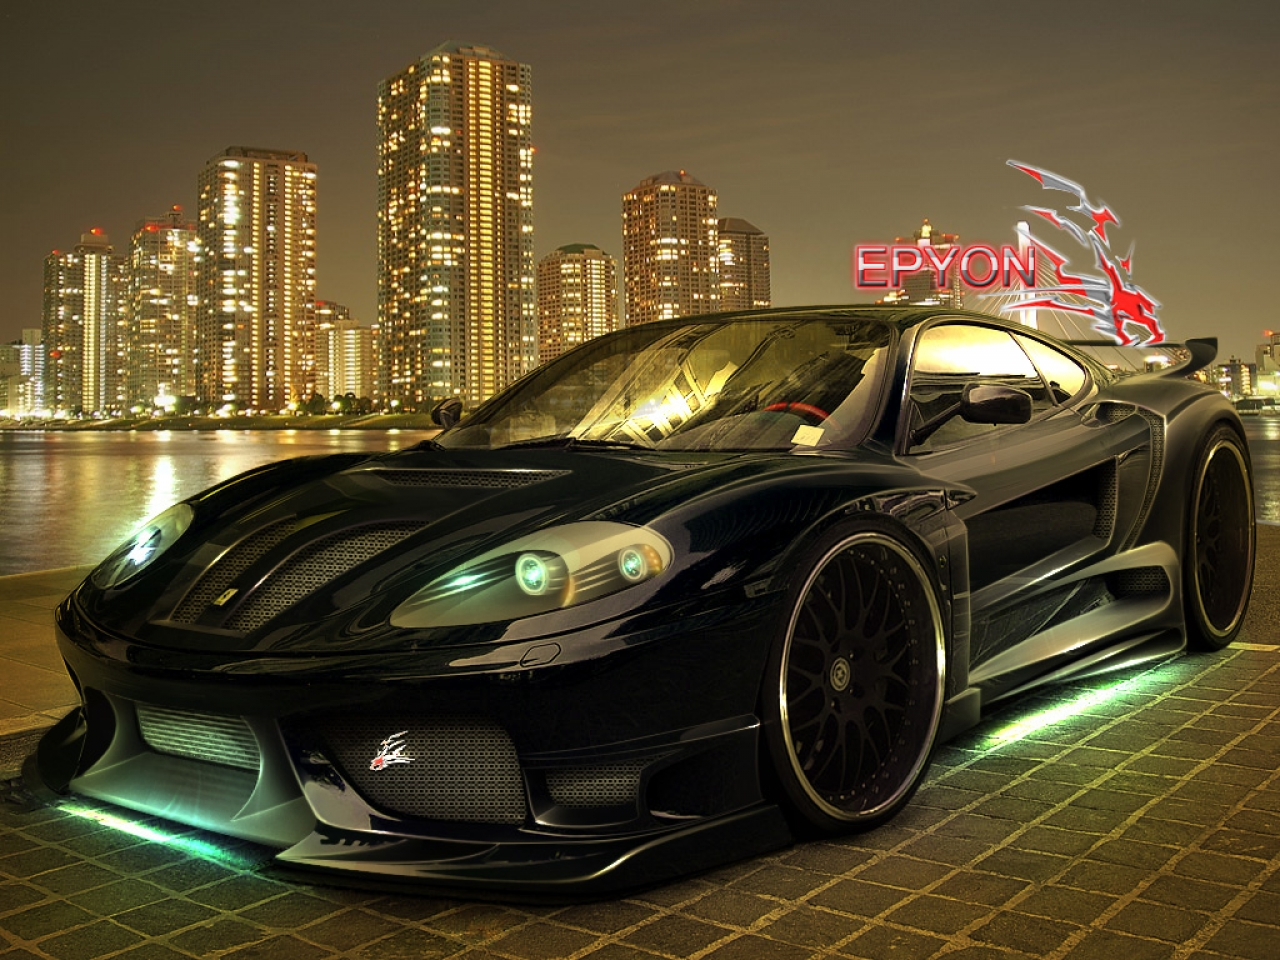 Sport Wallpaper Black: Black Sport Cars Wallpapers 21 Cool Wallpaper